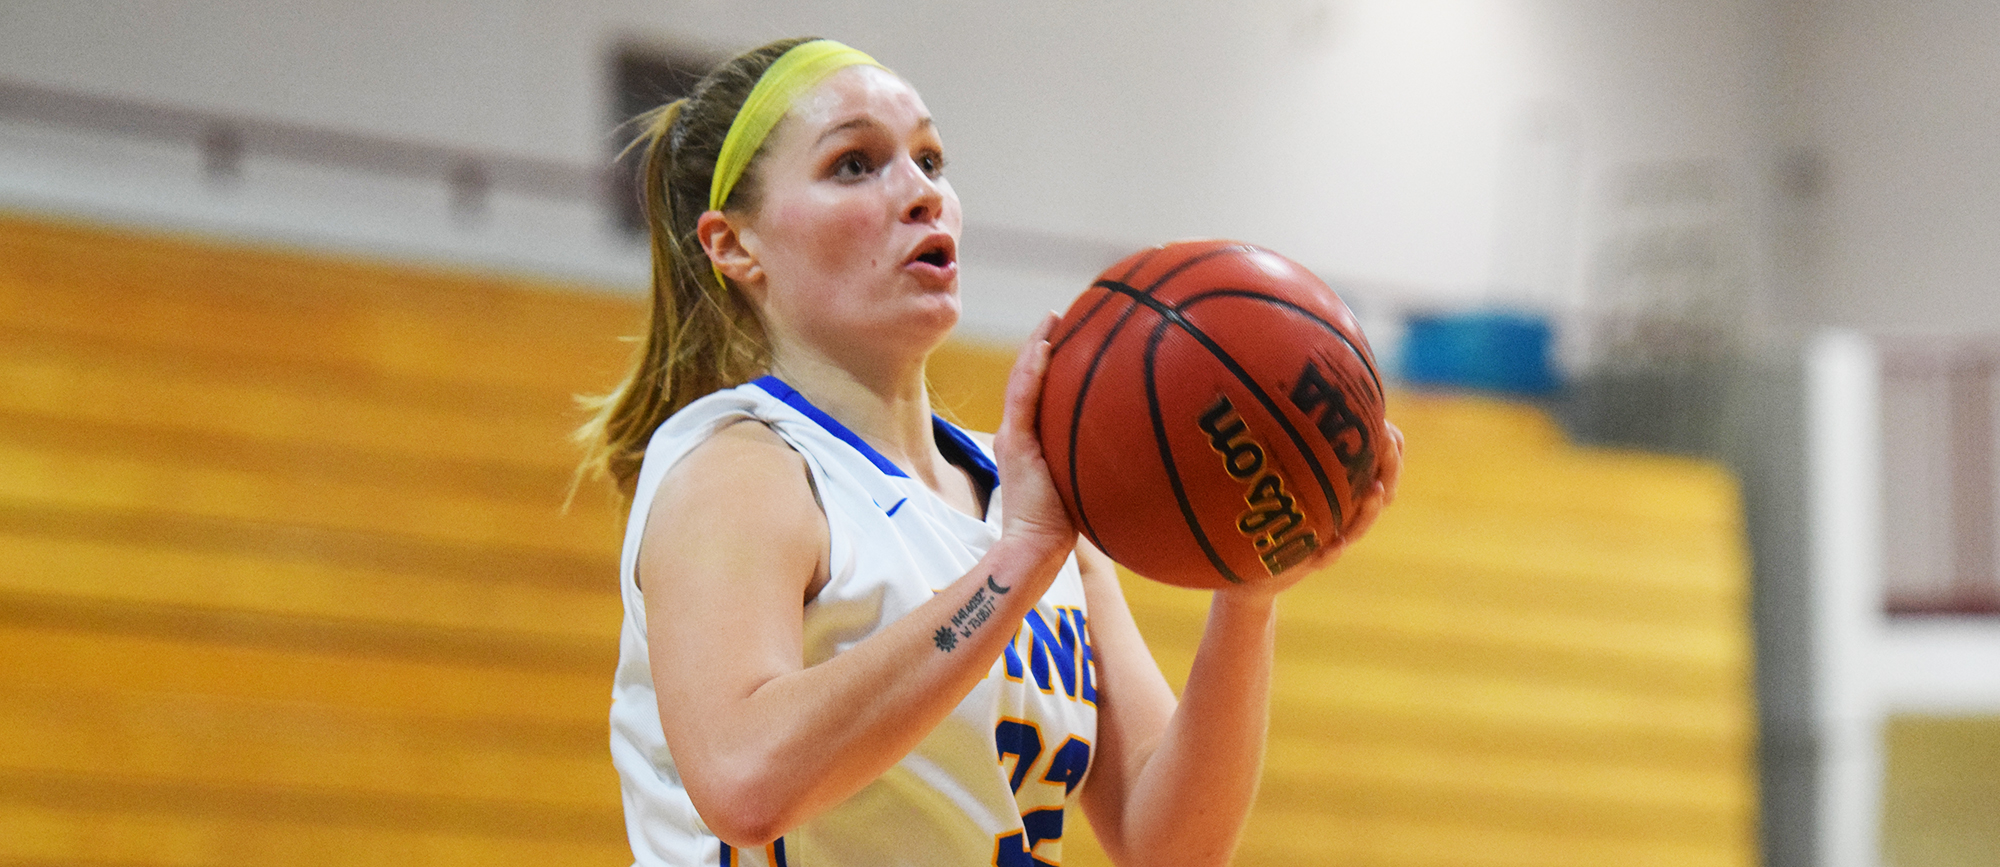 Sophomore Courtney Carlson scored a career-high 18 points in Western New England's 53-35 win at Curry on Thursday. (Photo by Rachael Margossian)